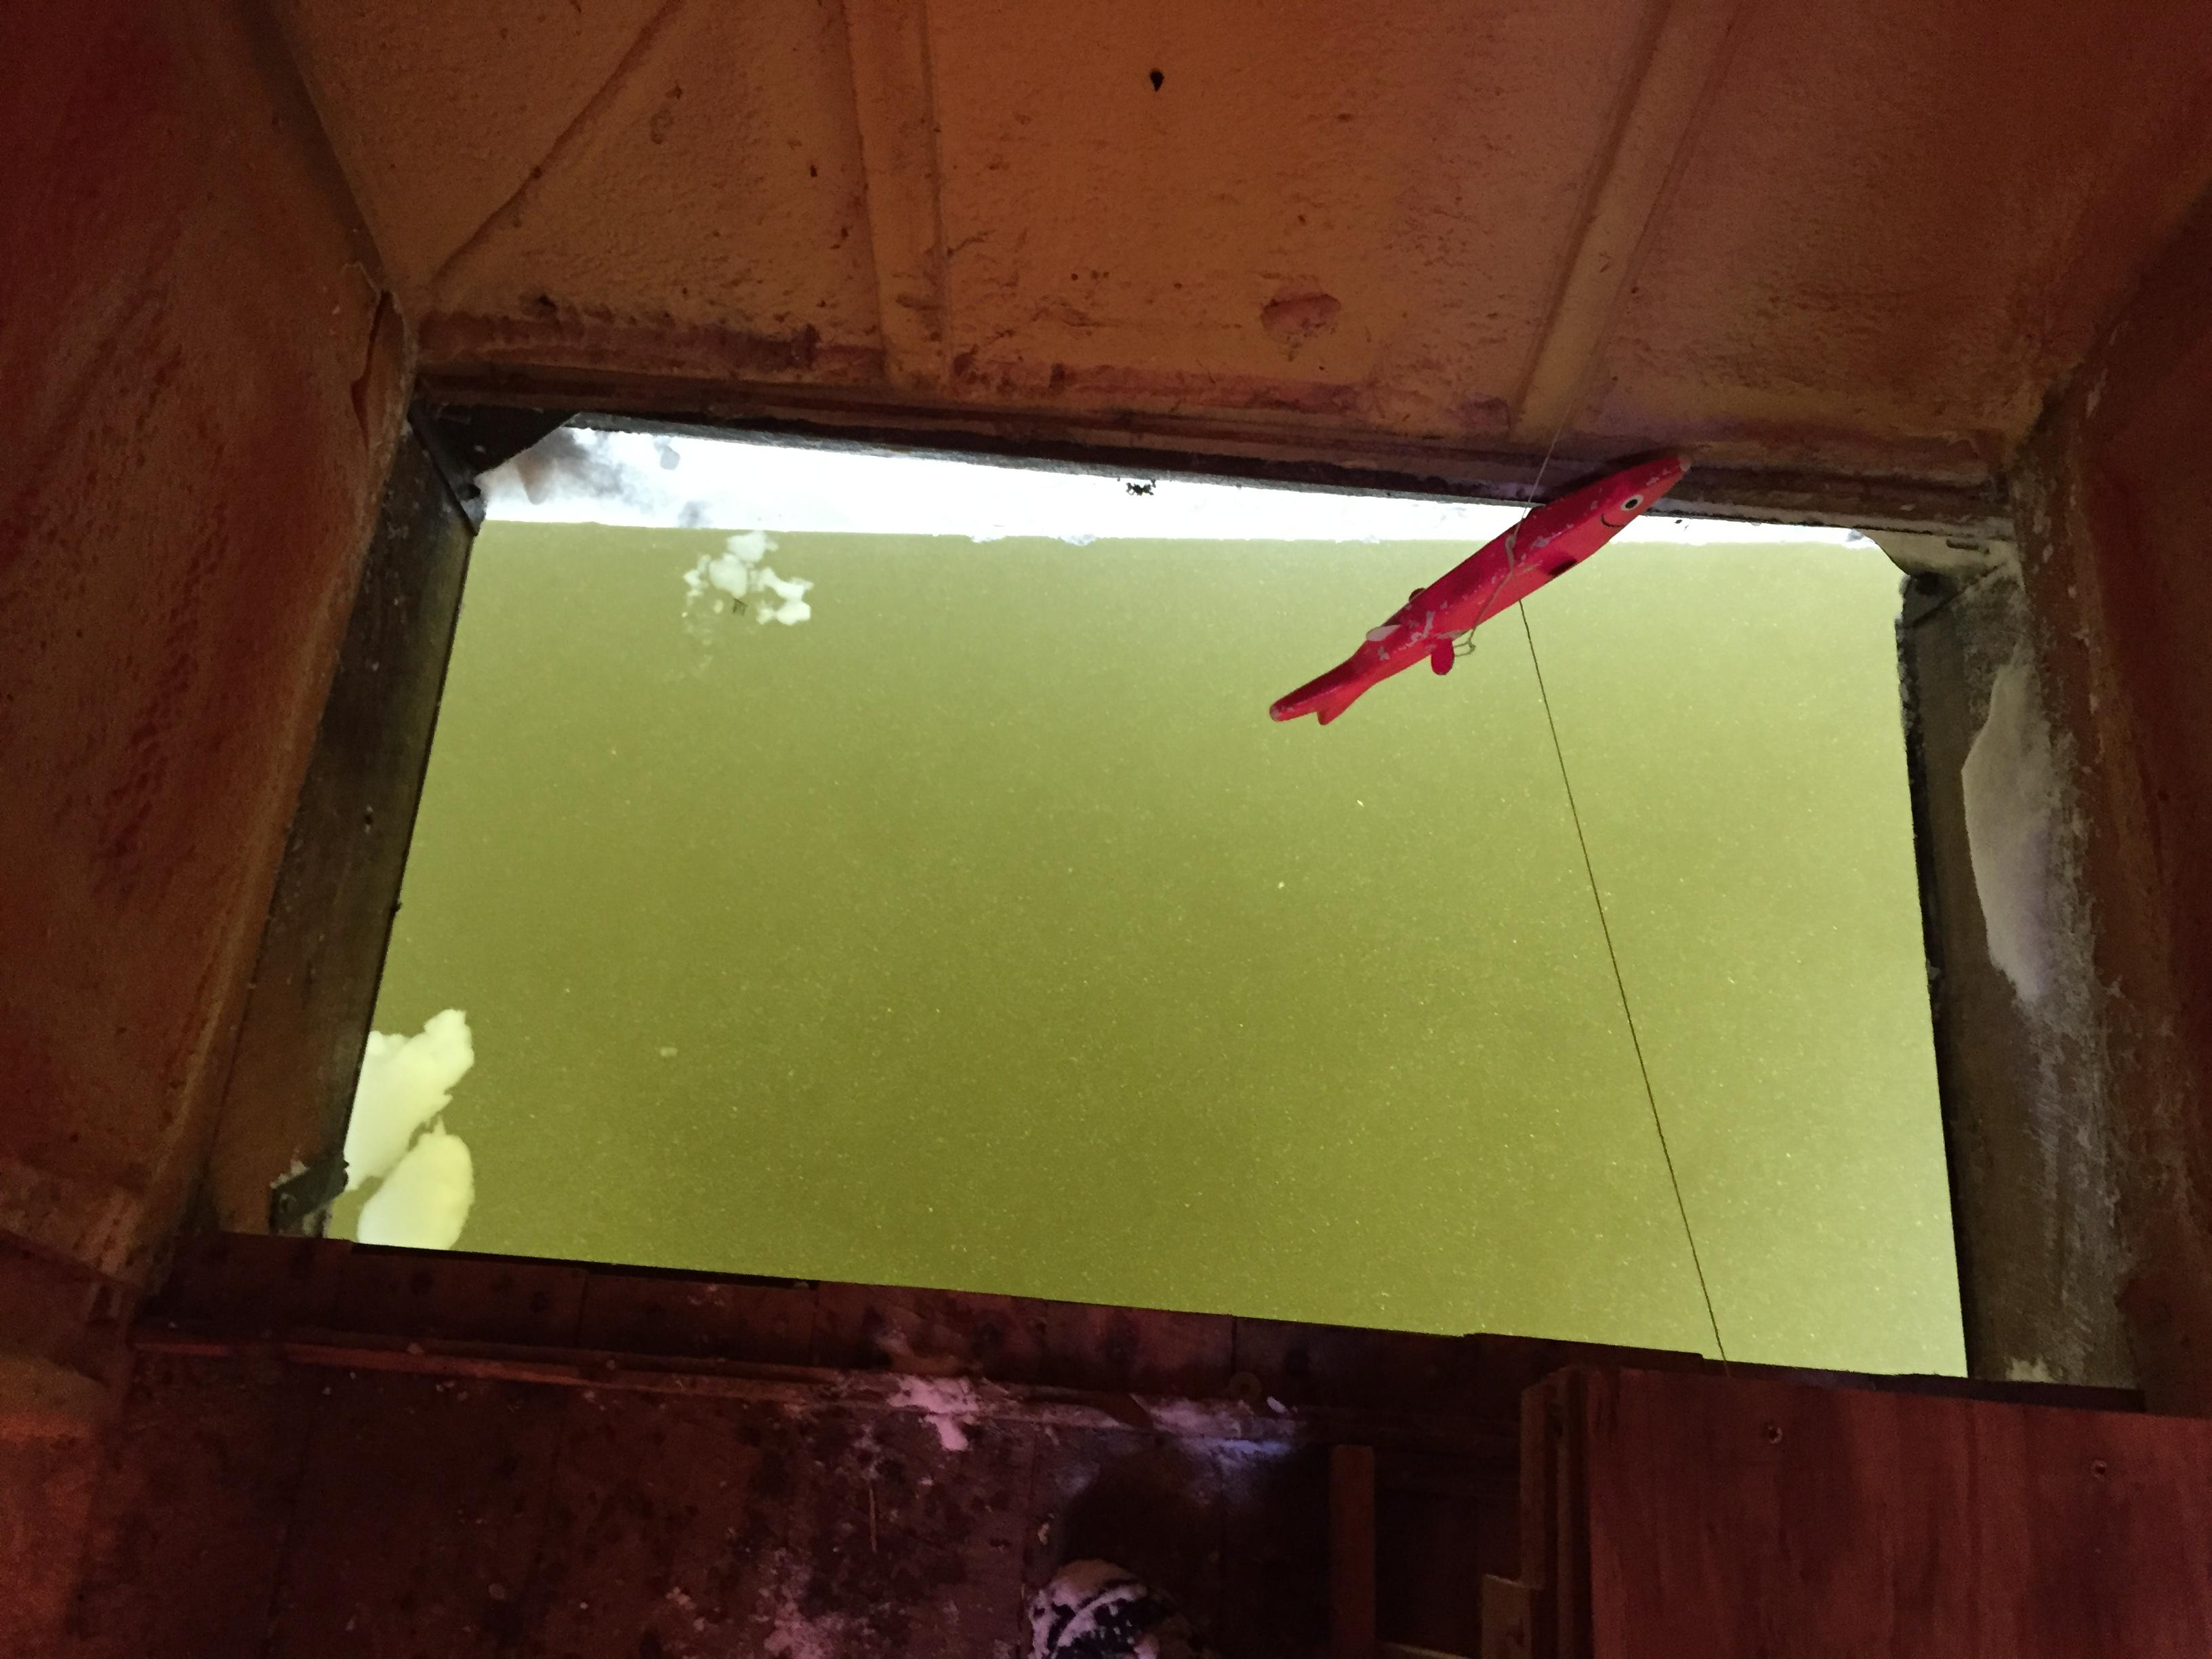 Water clarity conditions inside a sturgeon spearing shack on Lake Winnebago, February 8, 2018 (WLUK/Eric Peterson)